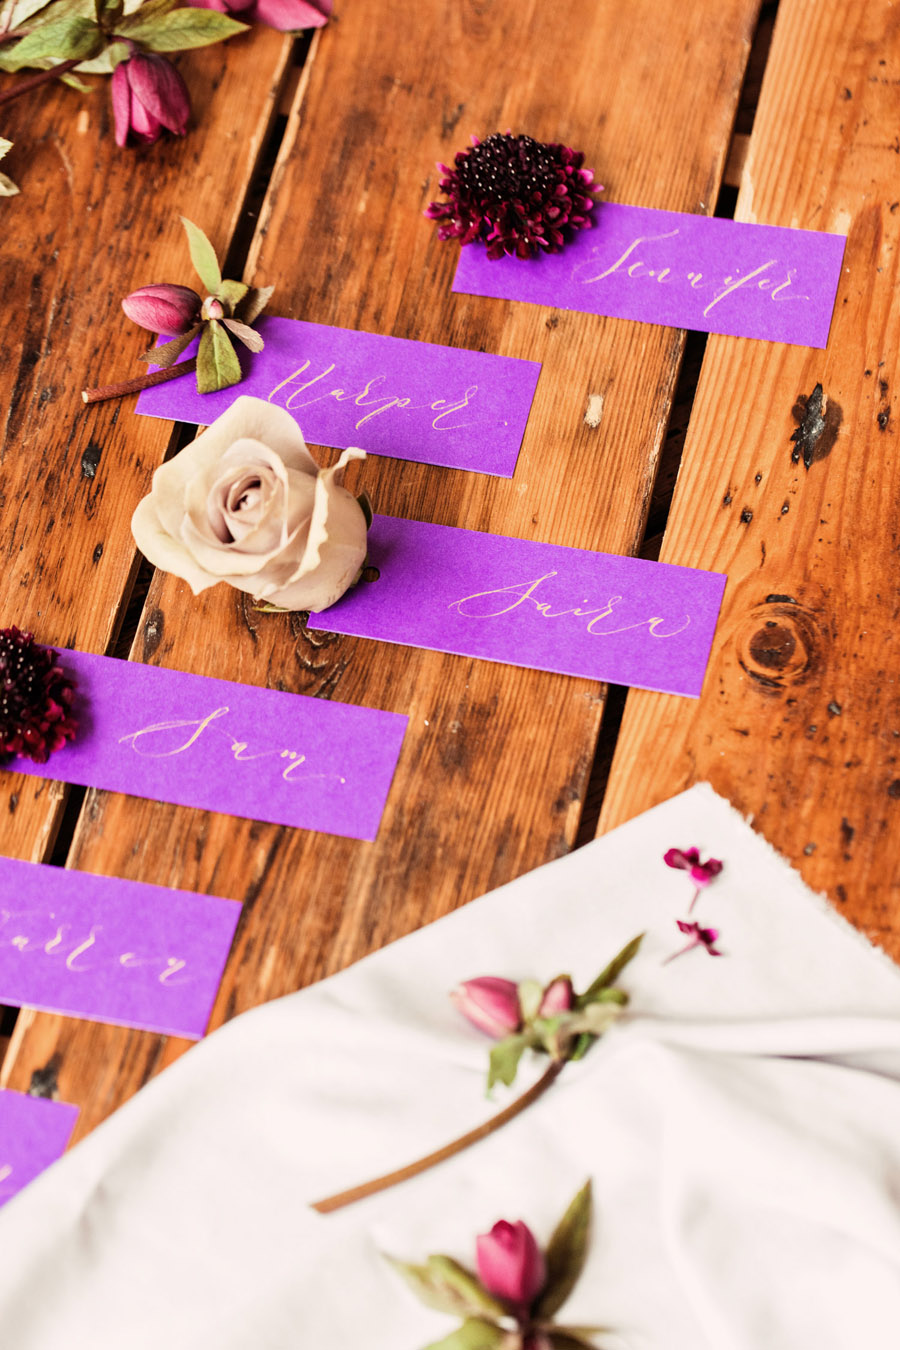 Calligraphy wedding service for place names and more - written by By Moon and Tide Calligraphy - image credit Camilla Lucinda (3)